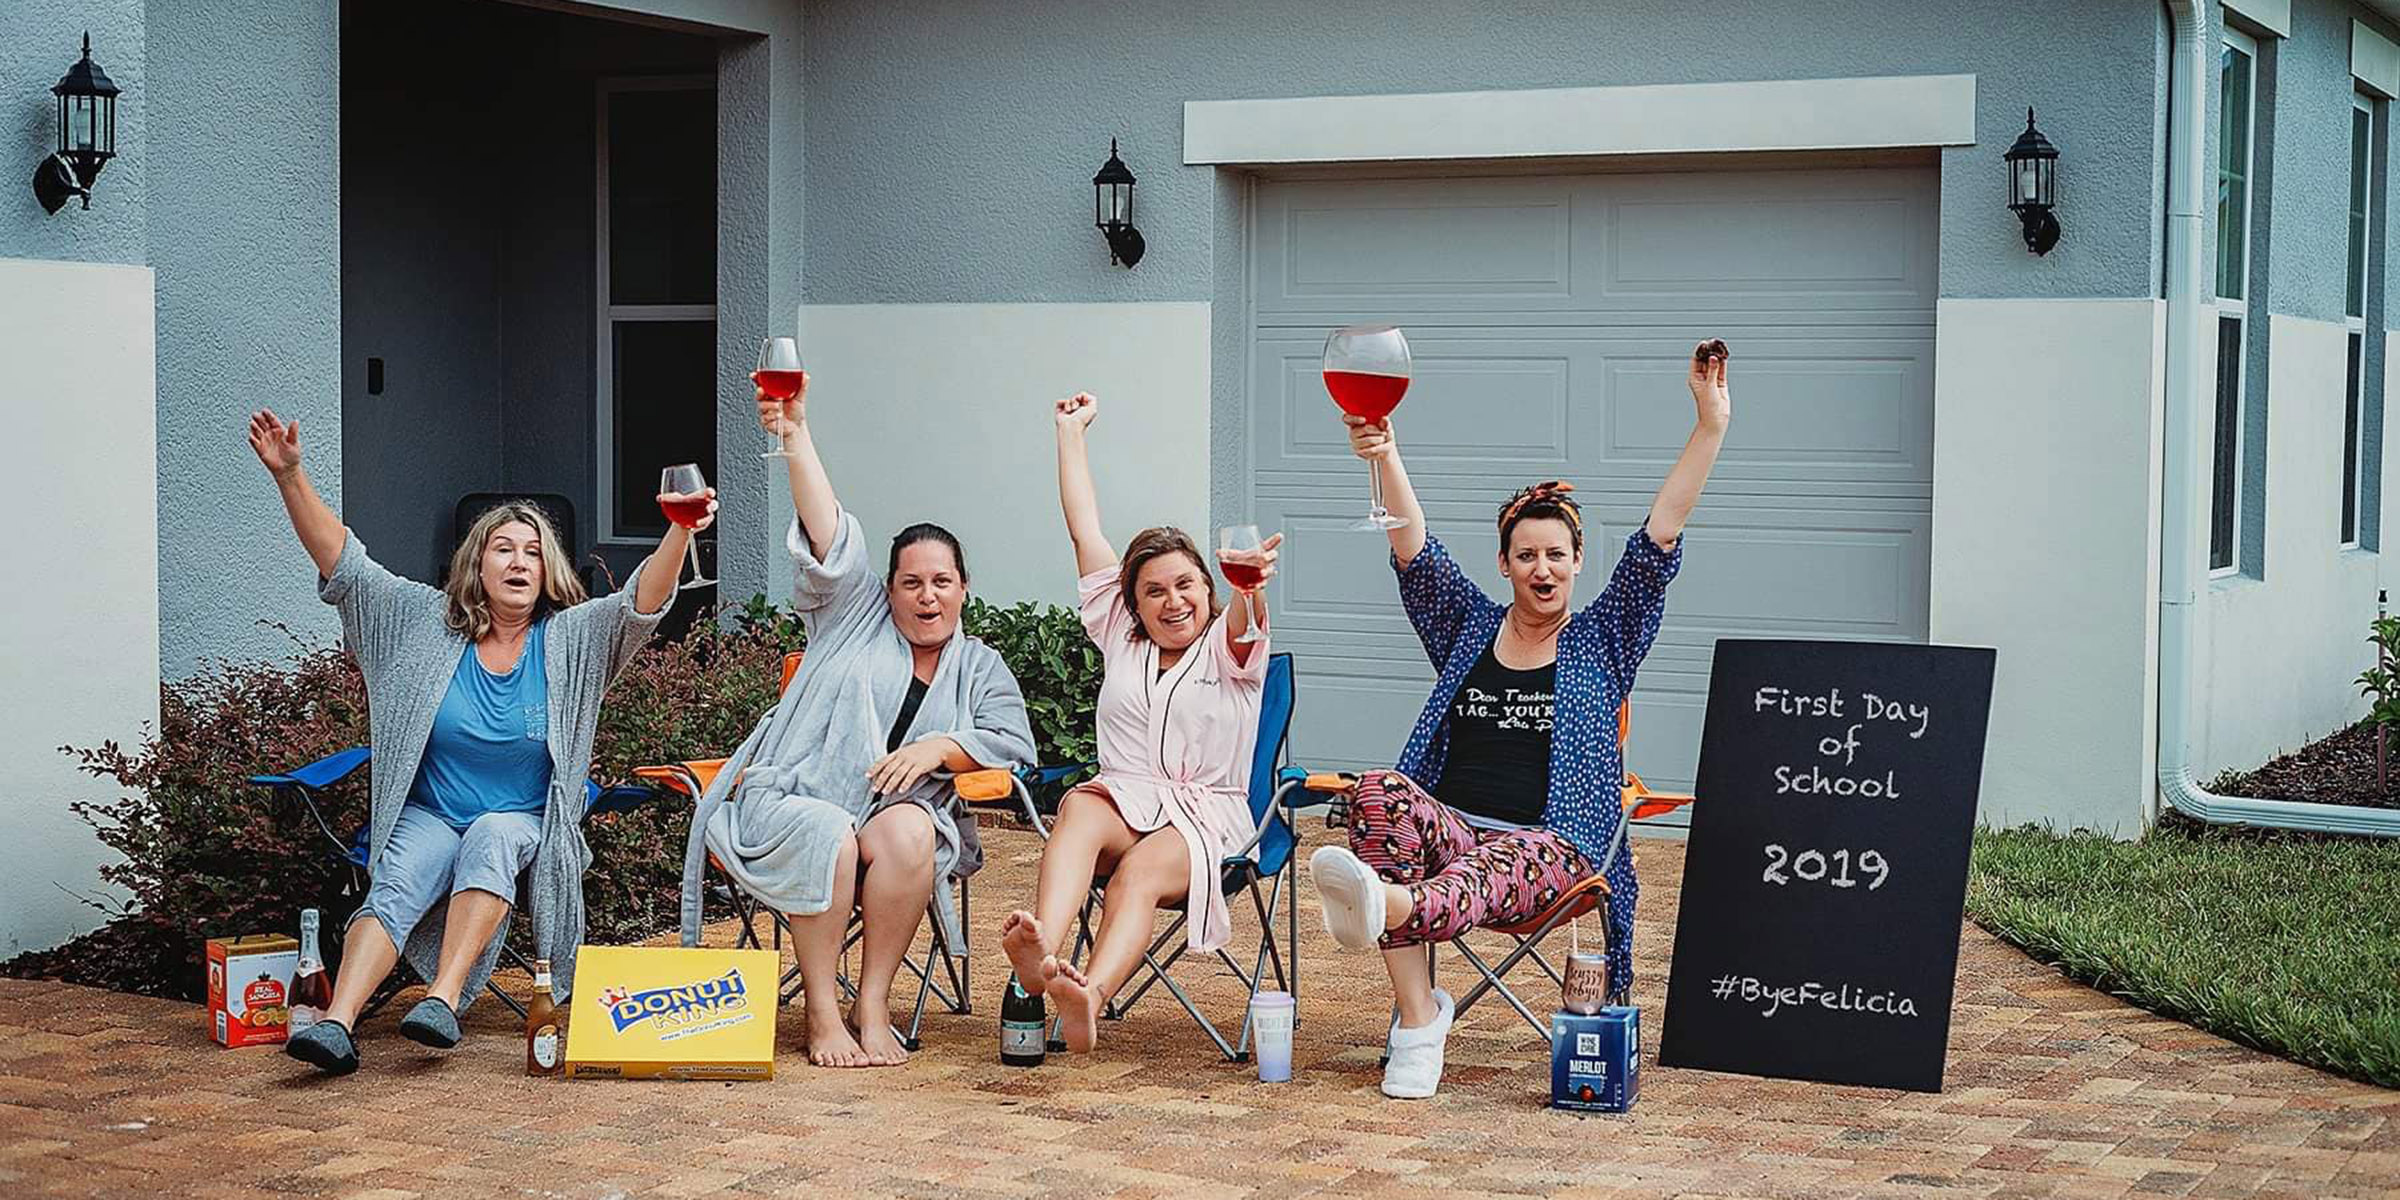 Moms stage funny back-to-school pictures to celebrate their joy